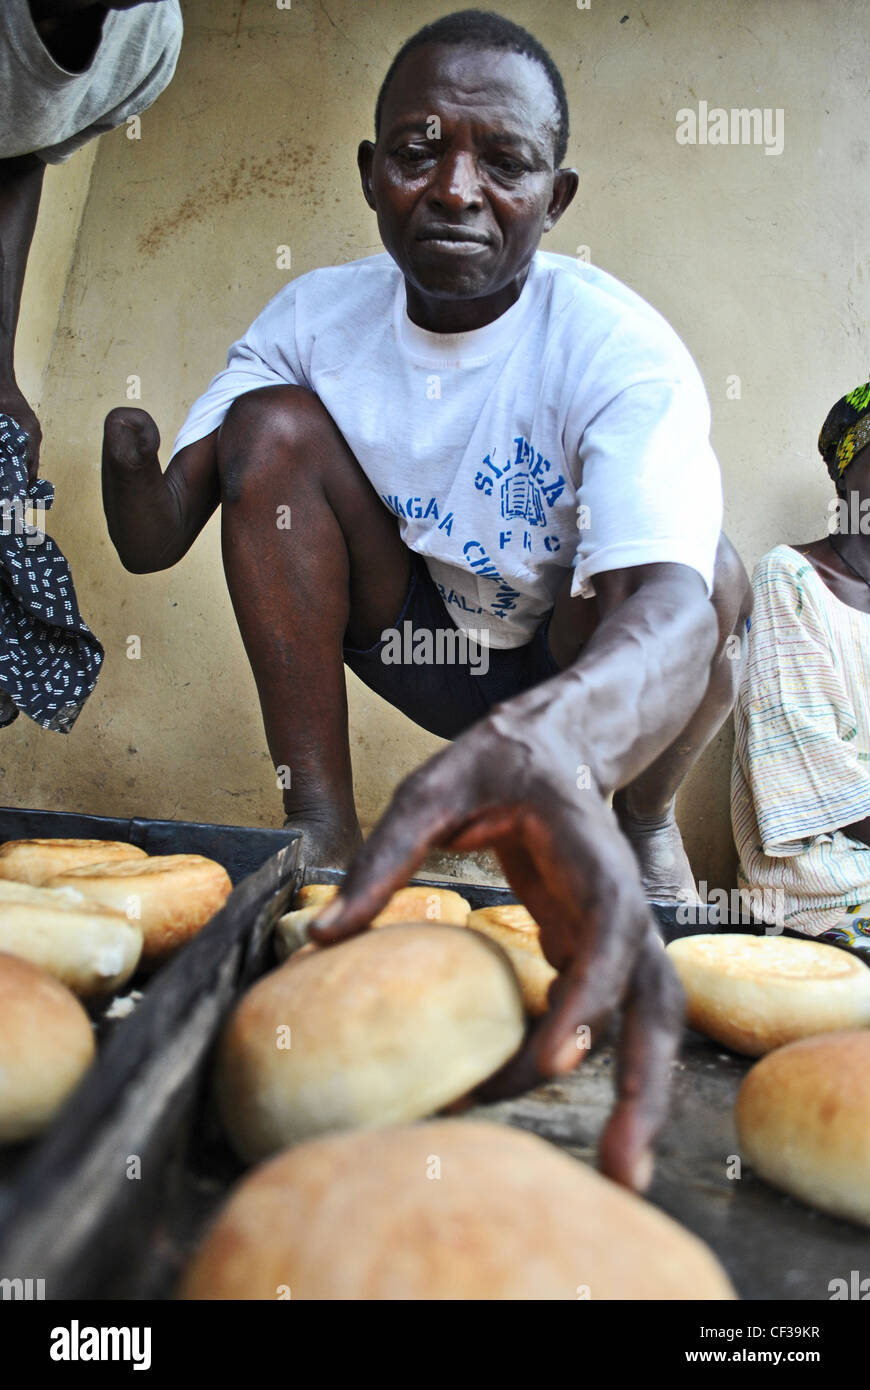 Amputee from Sierra Leone's civil war, now a baker in Kabala, Sierra Leone - Stock Image